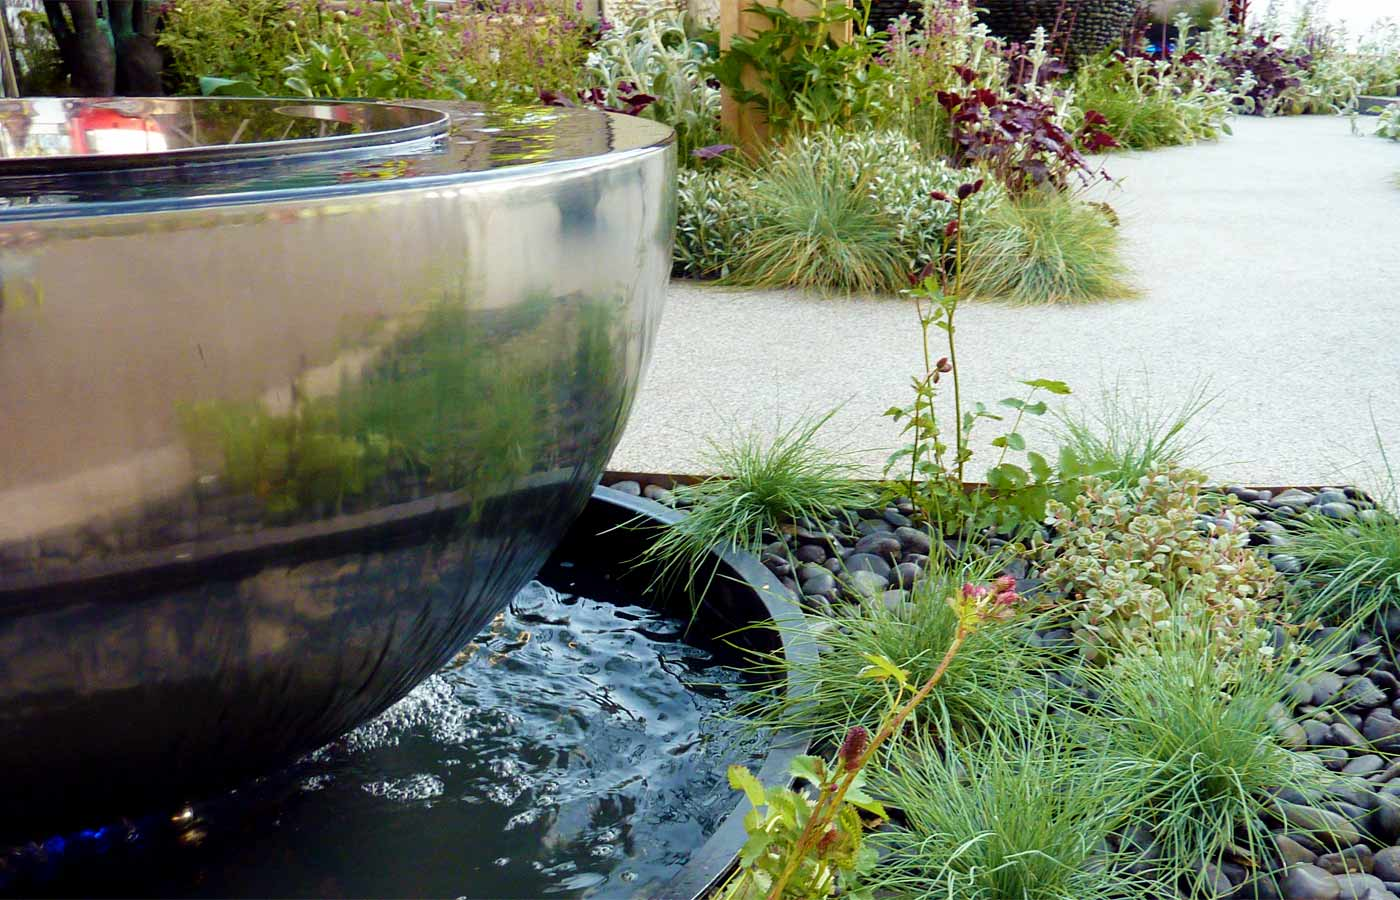 Pebbles and grasses provide a foil for a glittering water feature